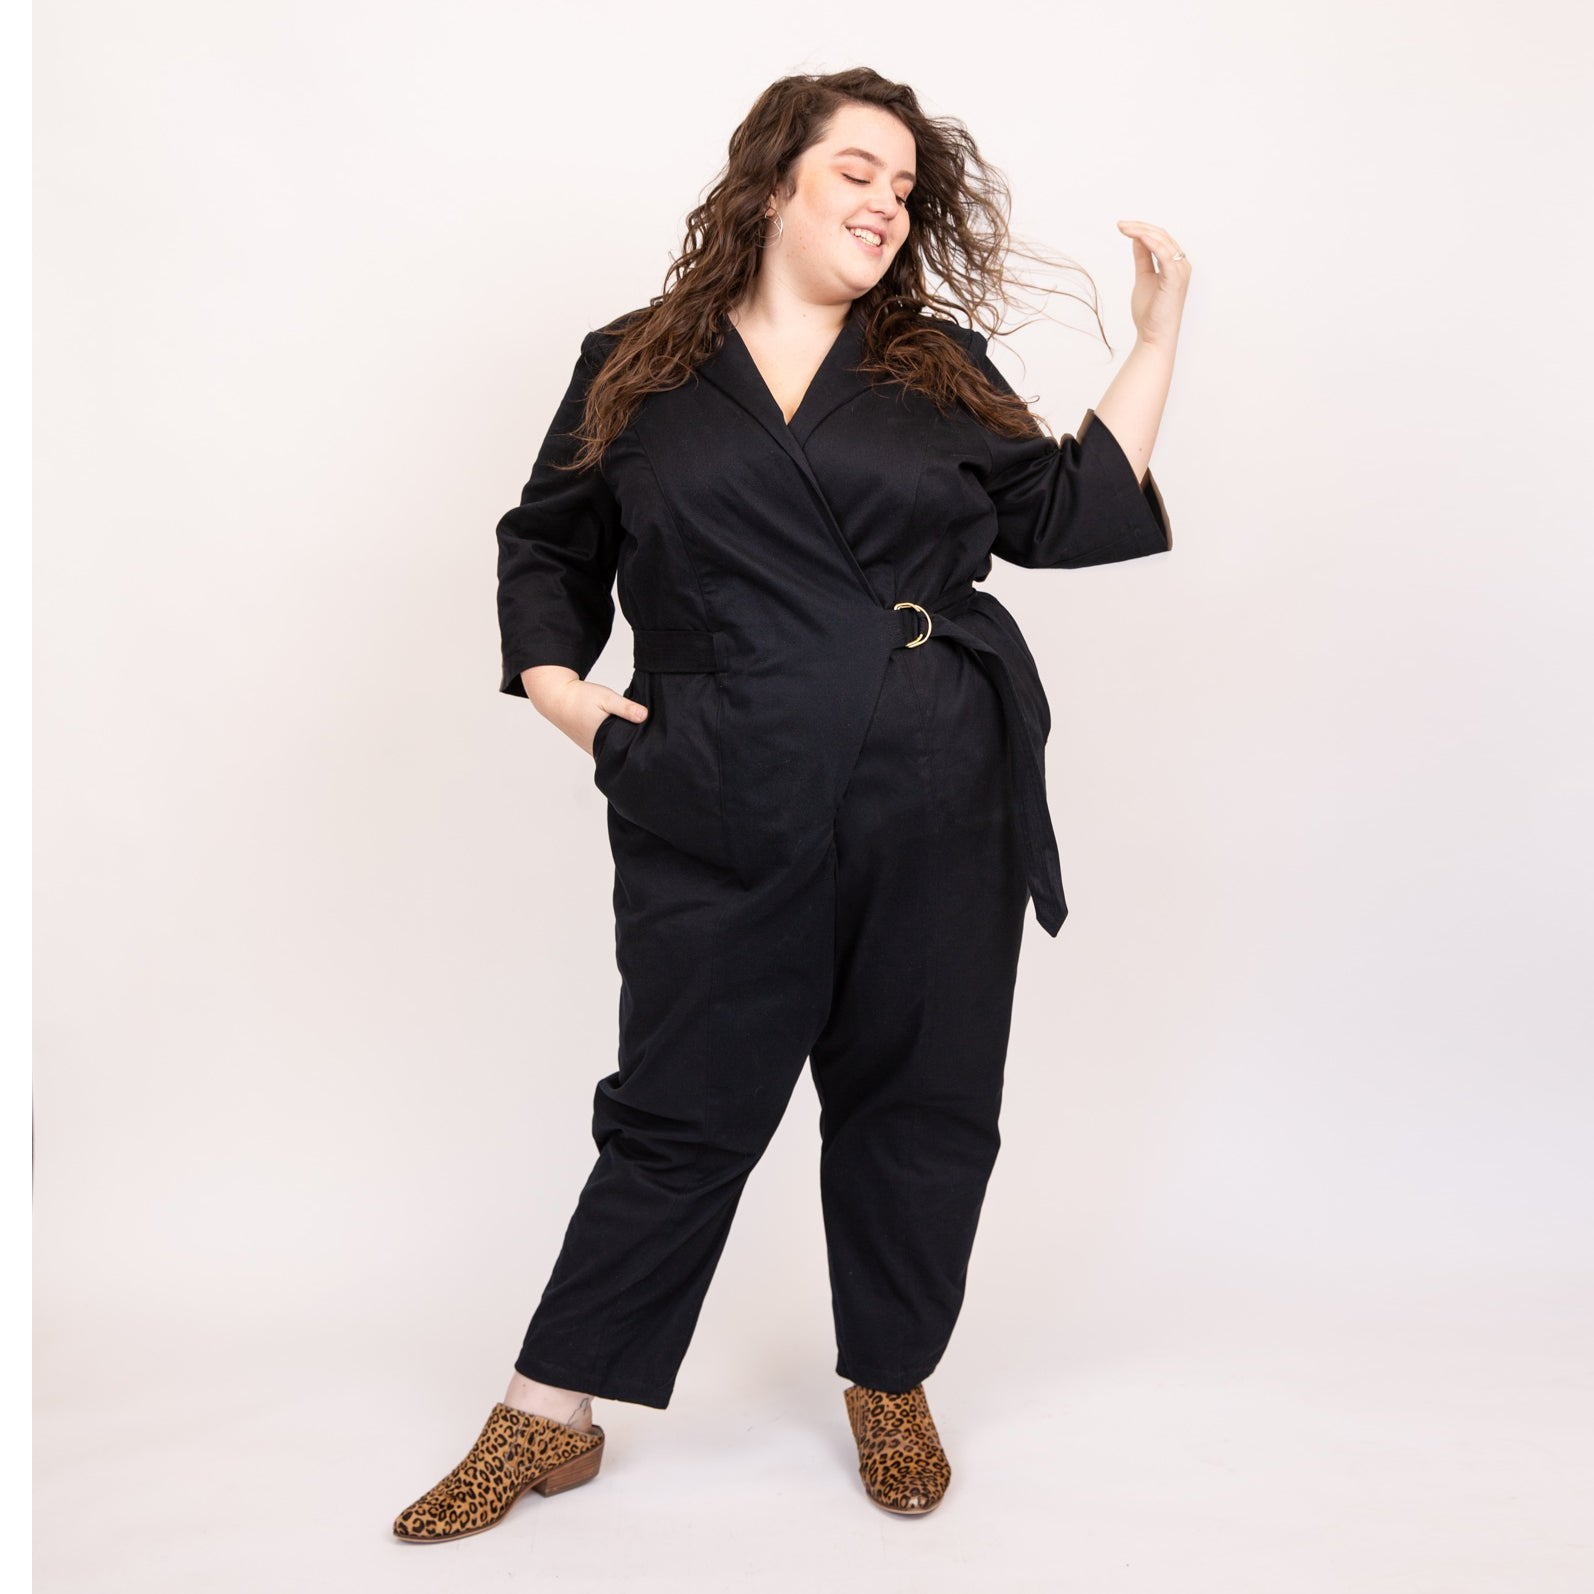 The Rosie Jumpsuit Wrap Style Boiler Suit Alice Alexander